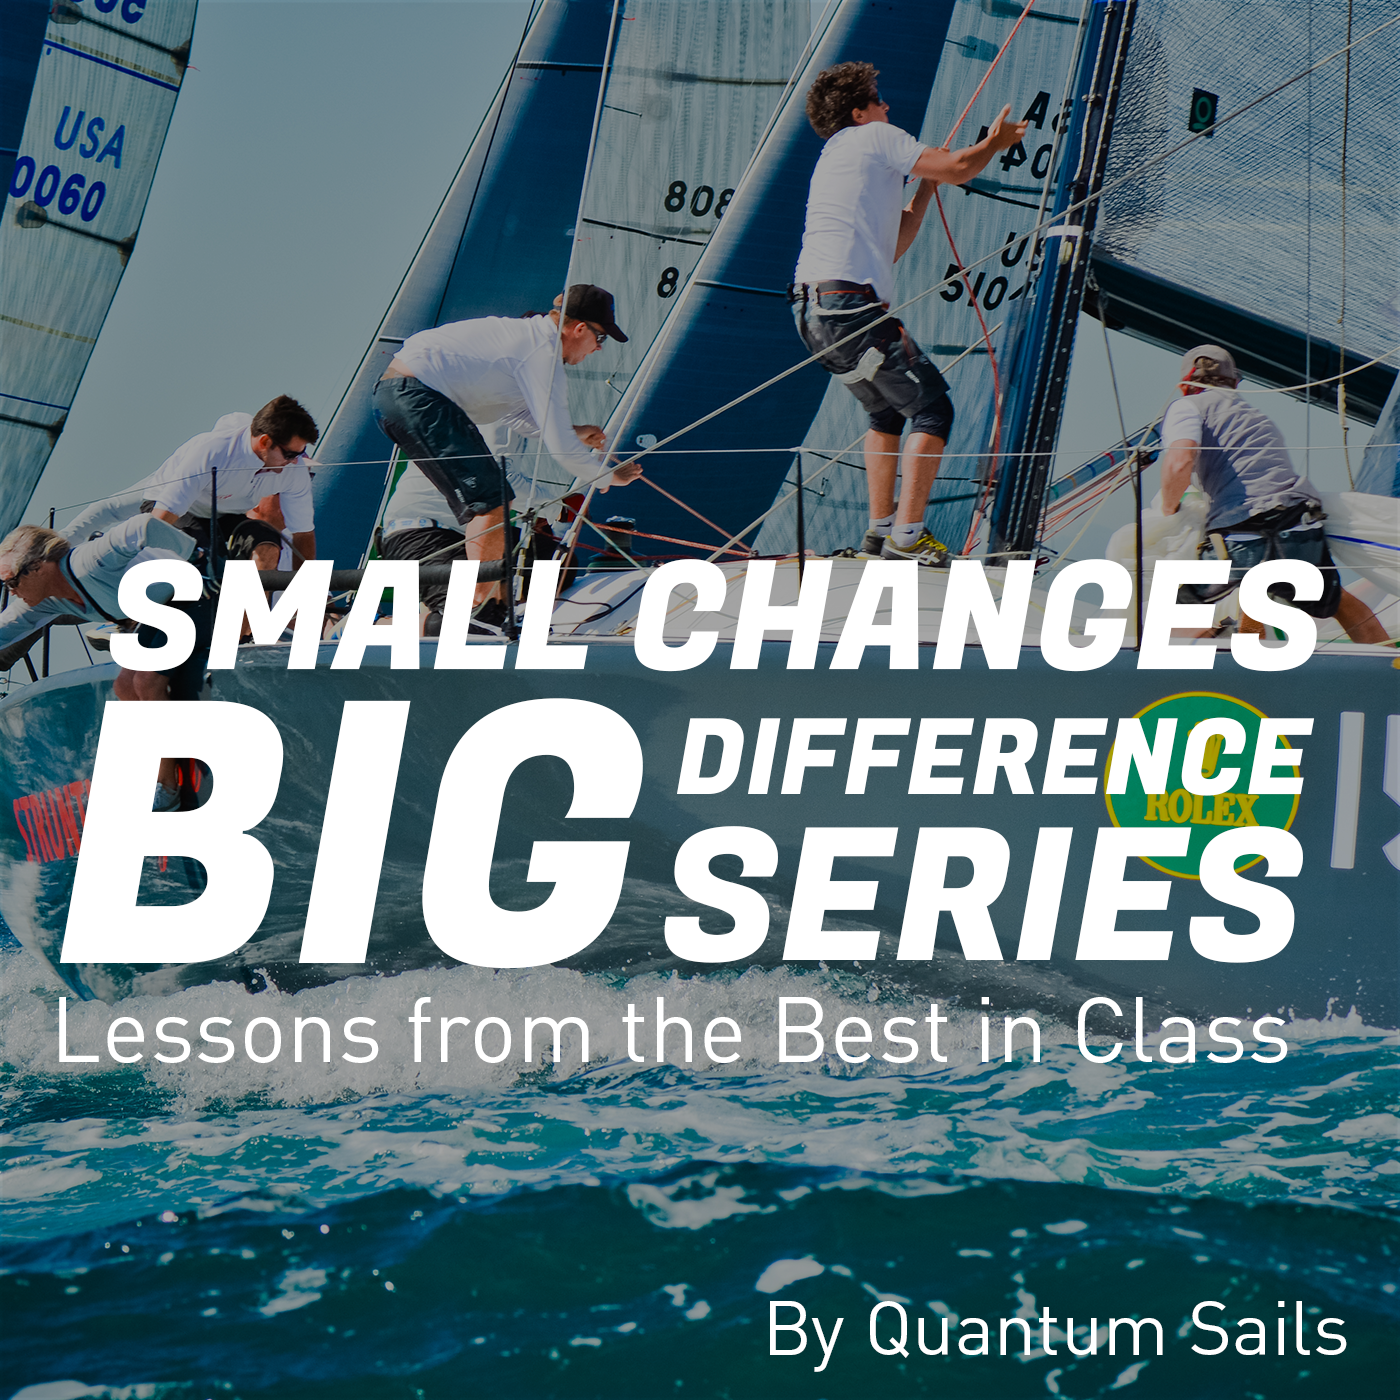 Grand Prix Sailing : Small Changes, Big Difference